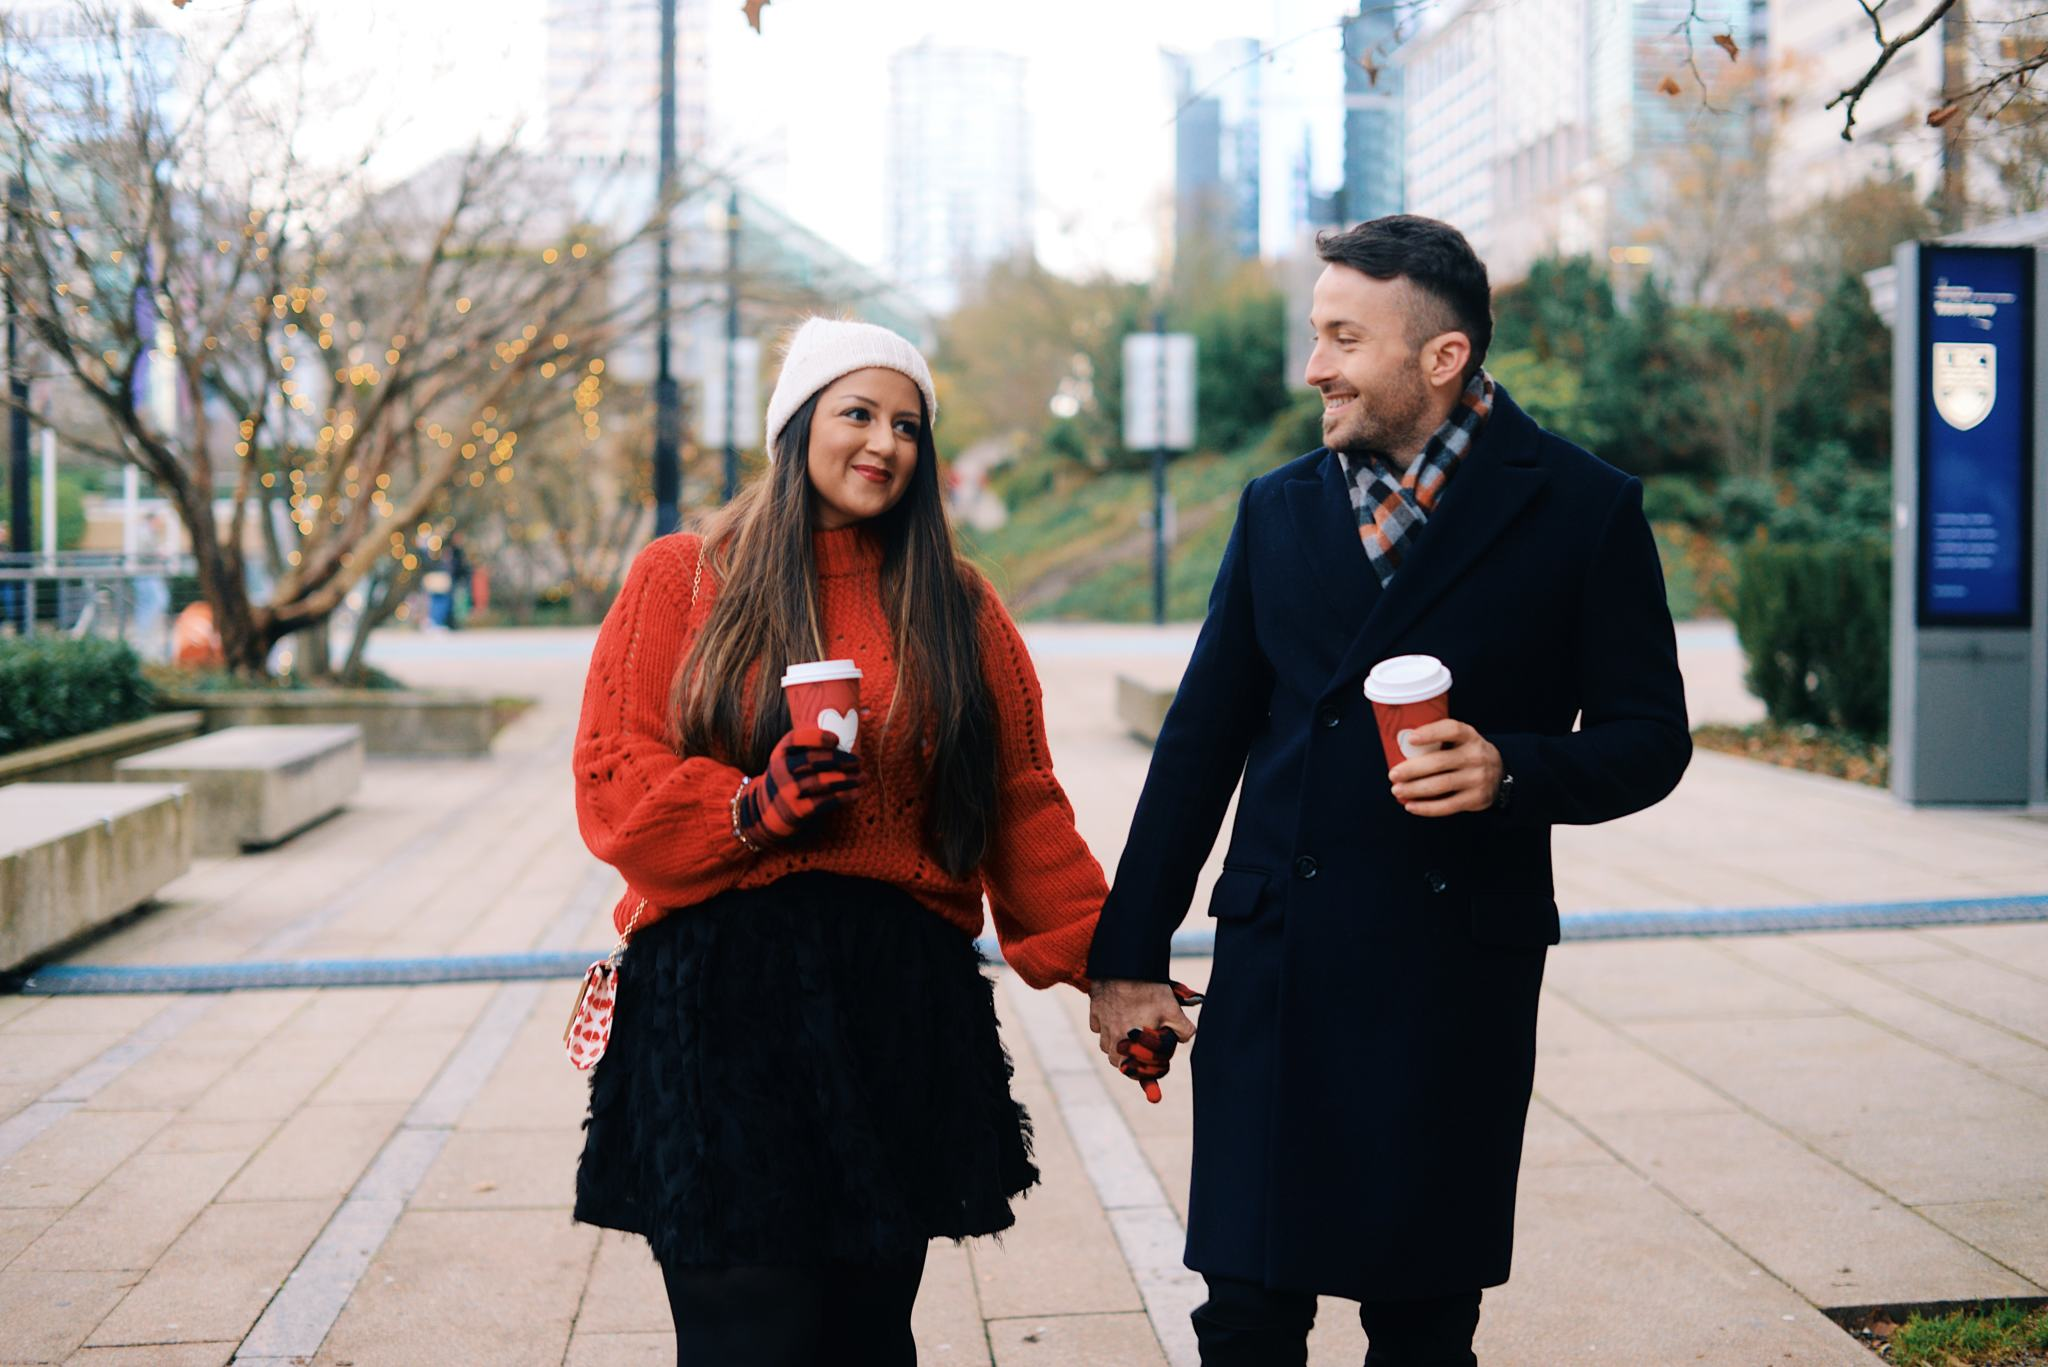 Couples Photoshoot – 5 things we love about each other